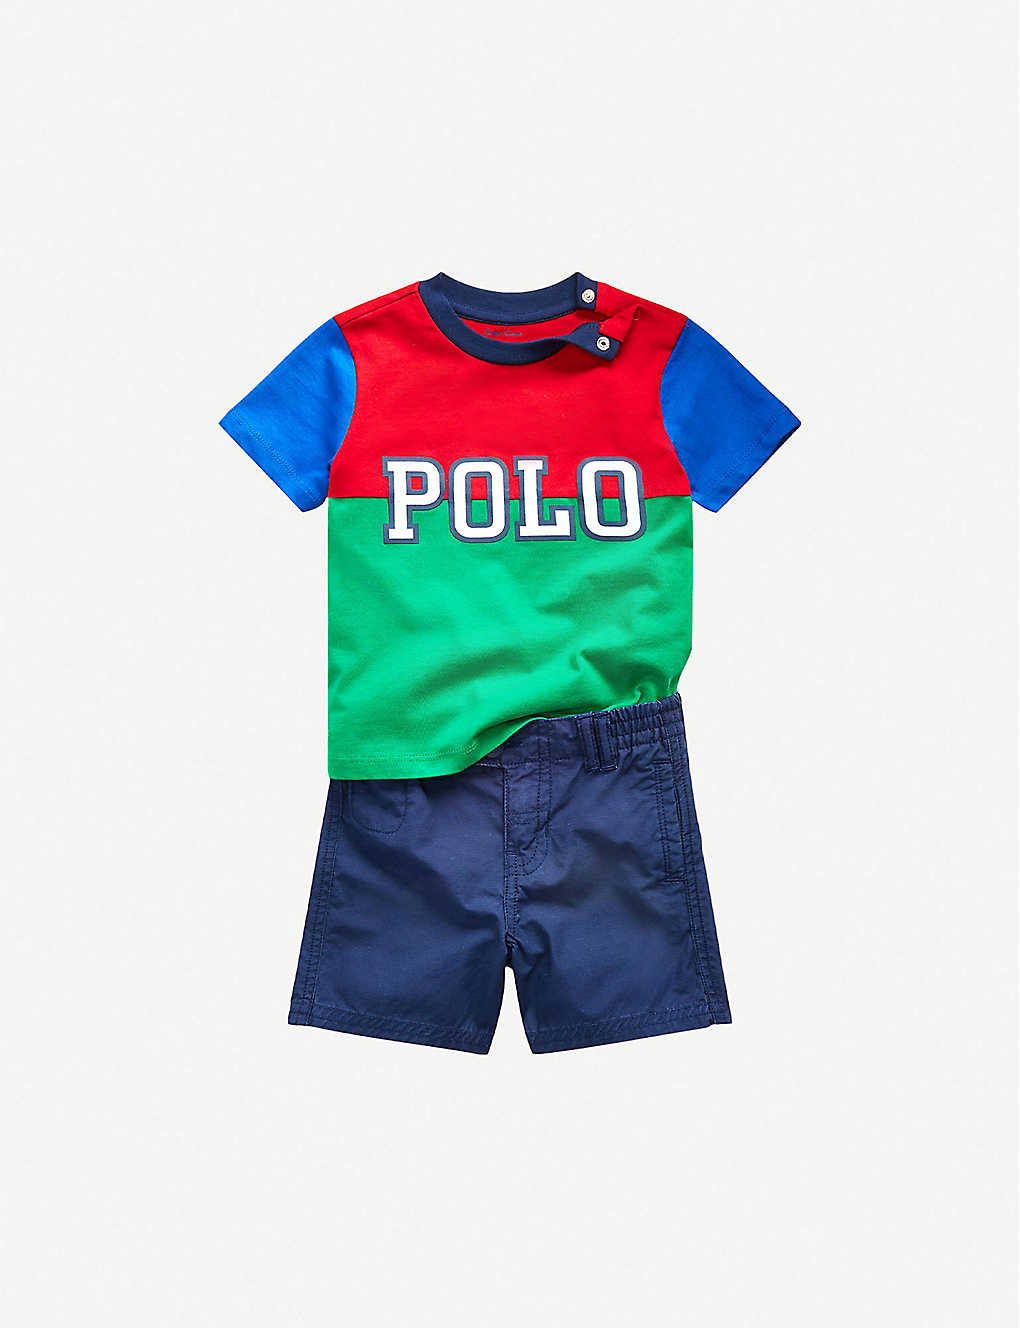 RALPH LAUREN: Polo logo-embroidered cotton T-shirt and shorts set 6-24 months